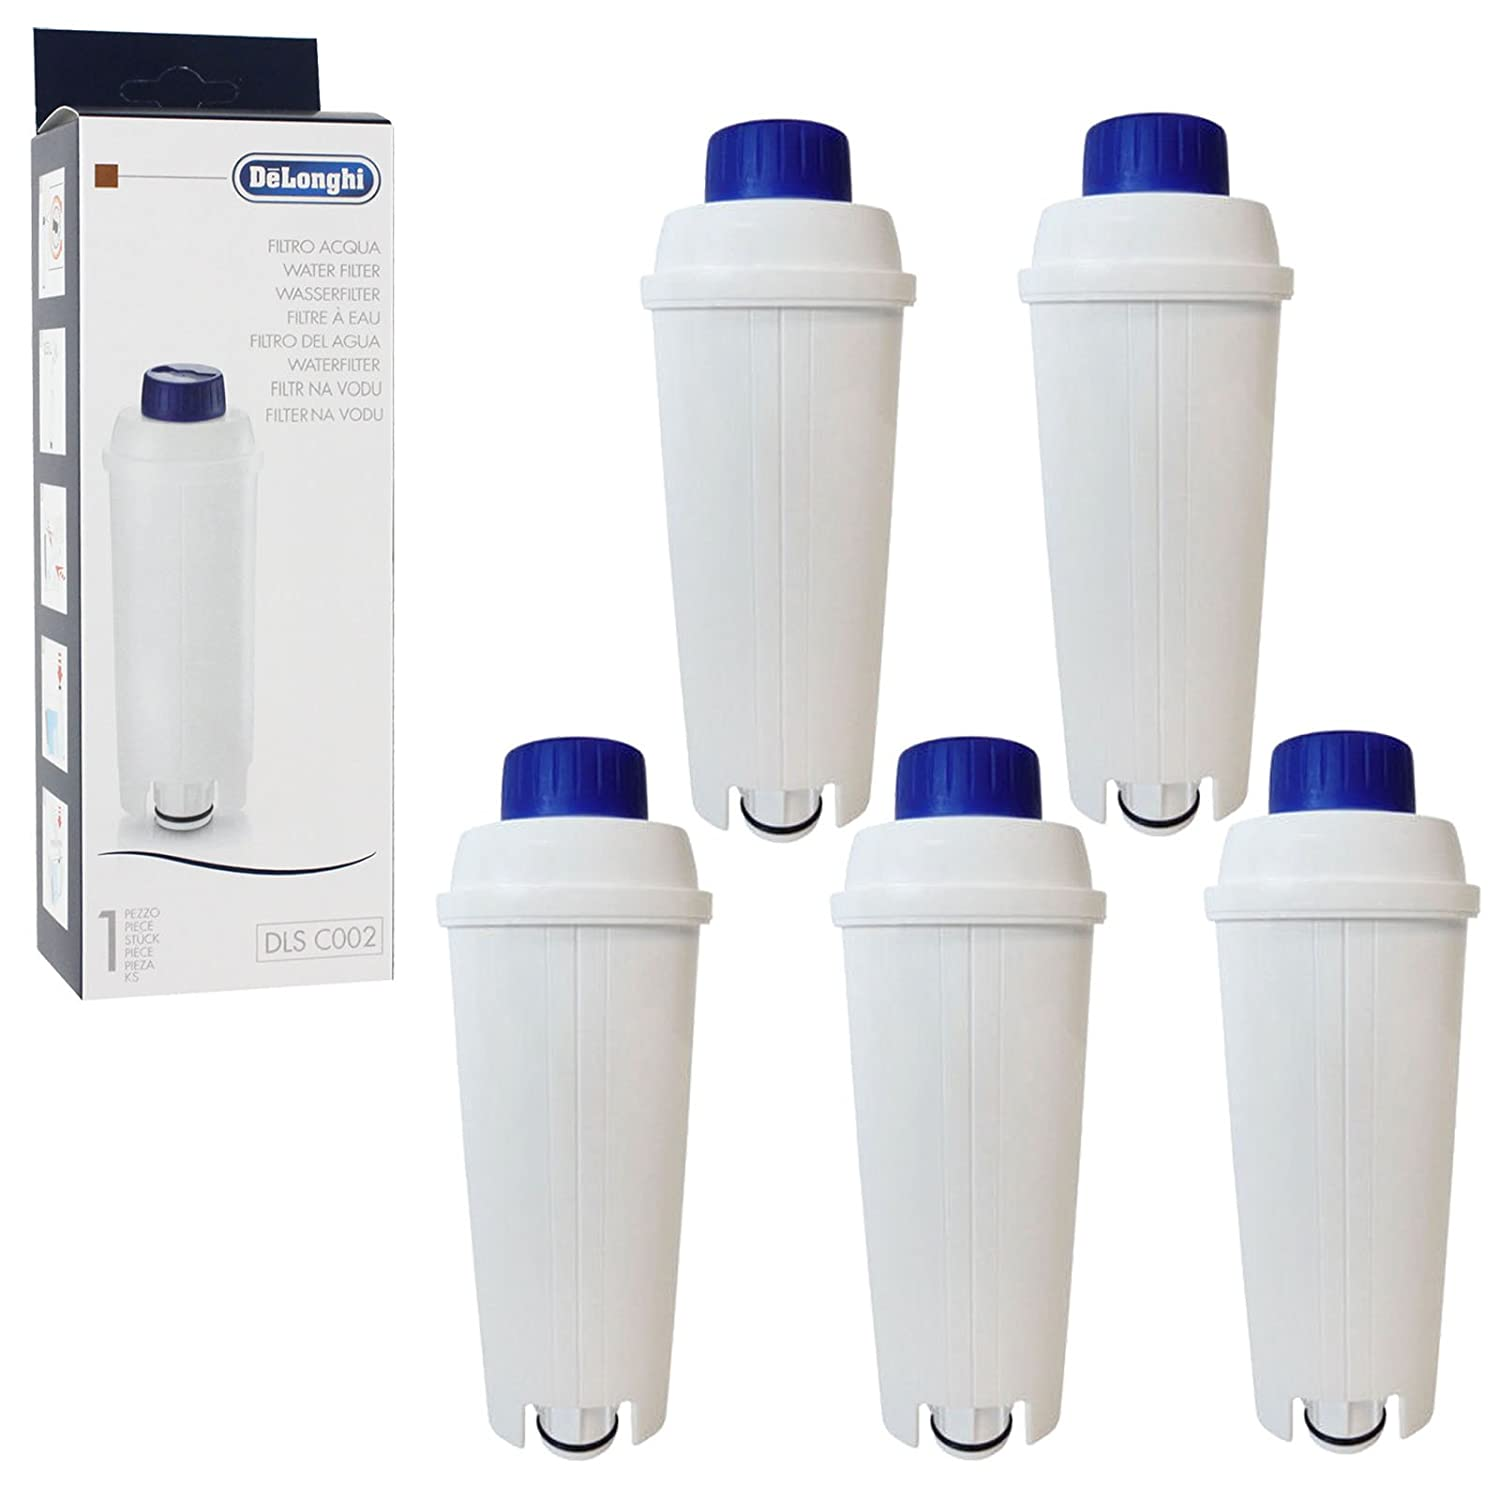 Delonghi Espresso and Bean to Cup Coffee Machine Water Filter Cartridges Pack of 5, Fits ECAM Series, SER3017